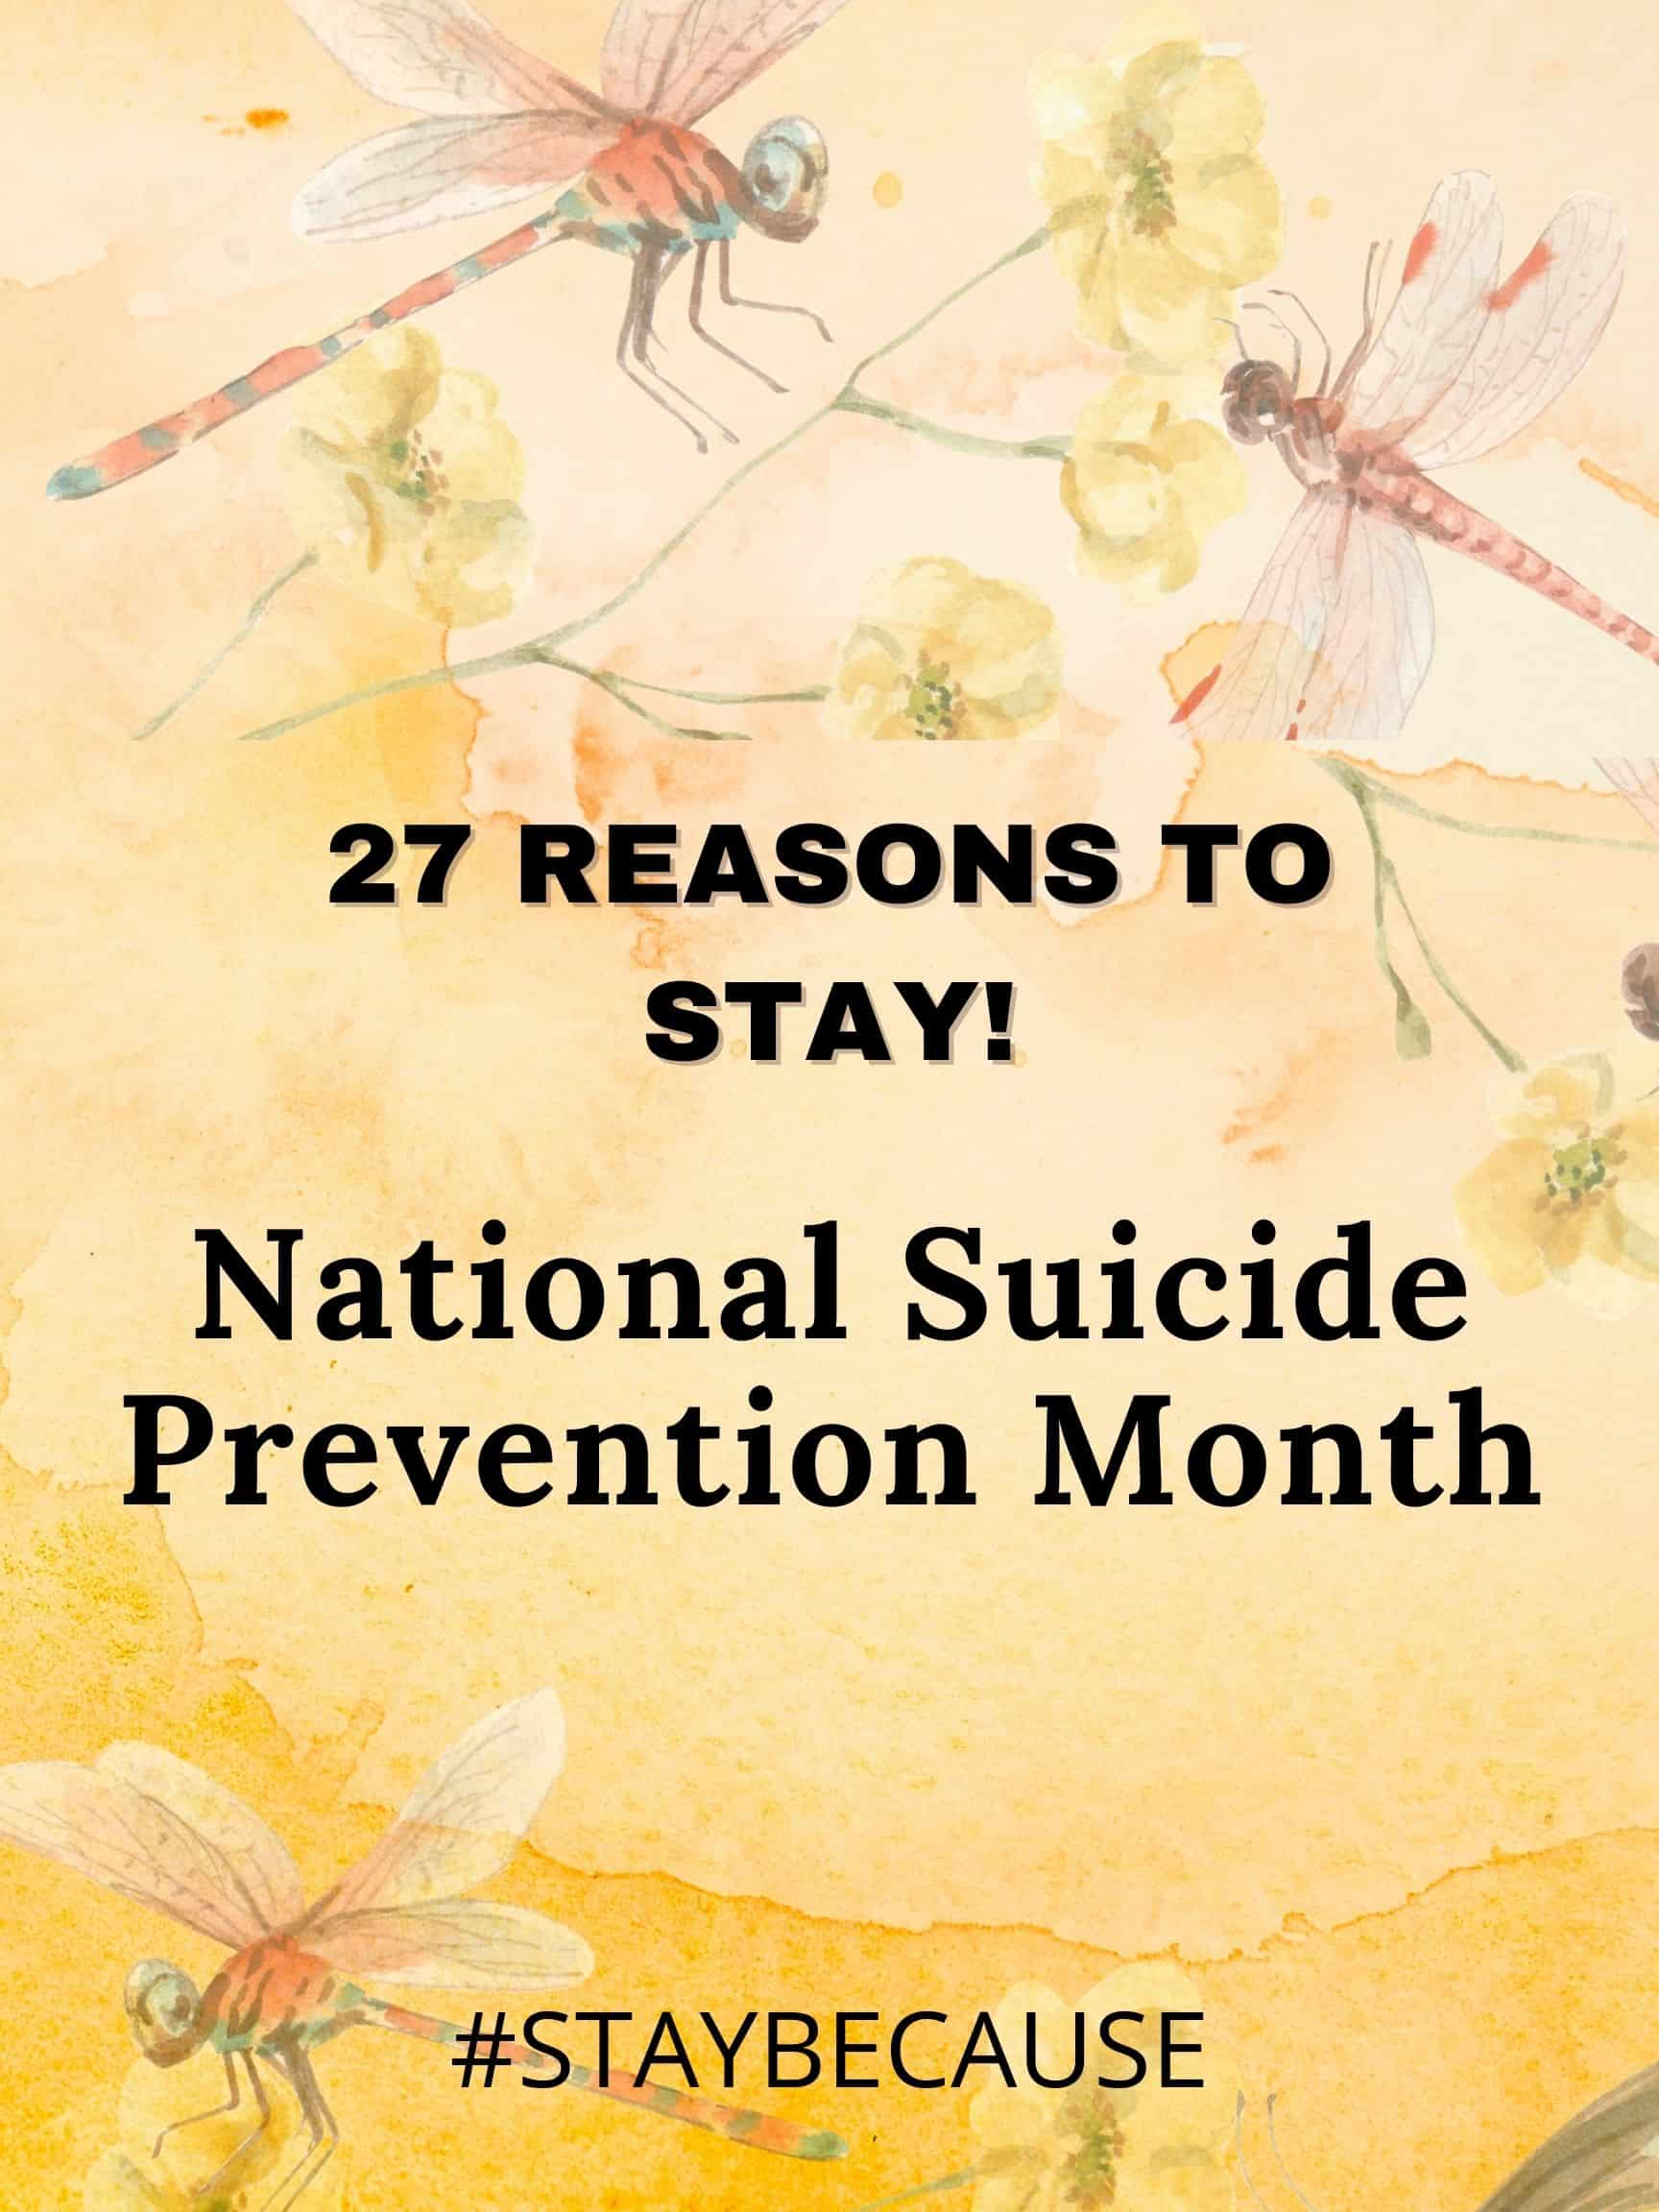 27 Reasons to Stay - Reasons not to commit suicide for National suicide prevention month #StayBecause